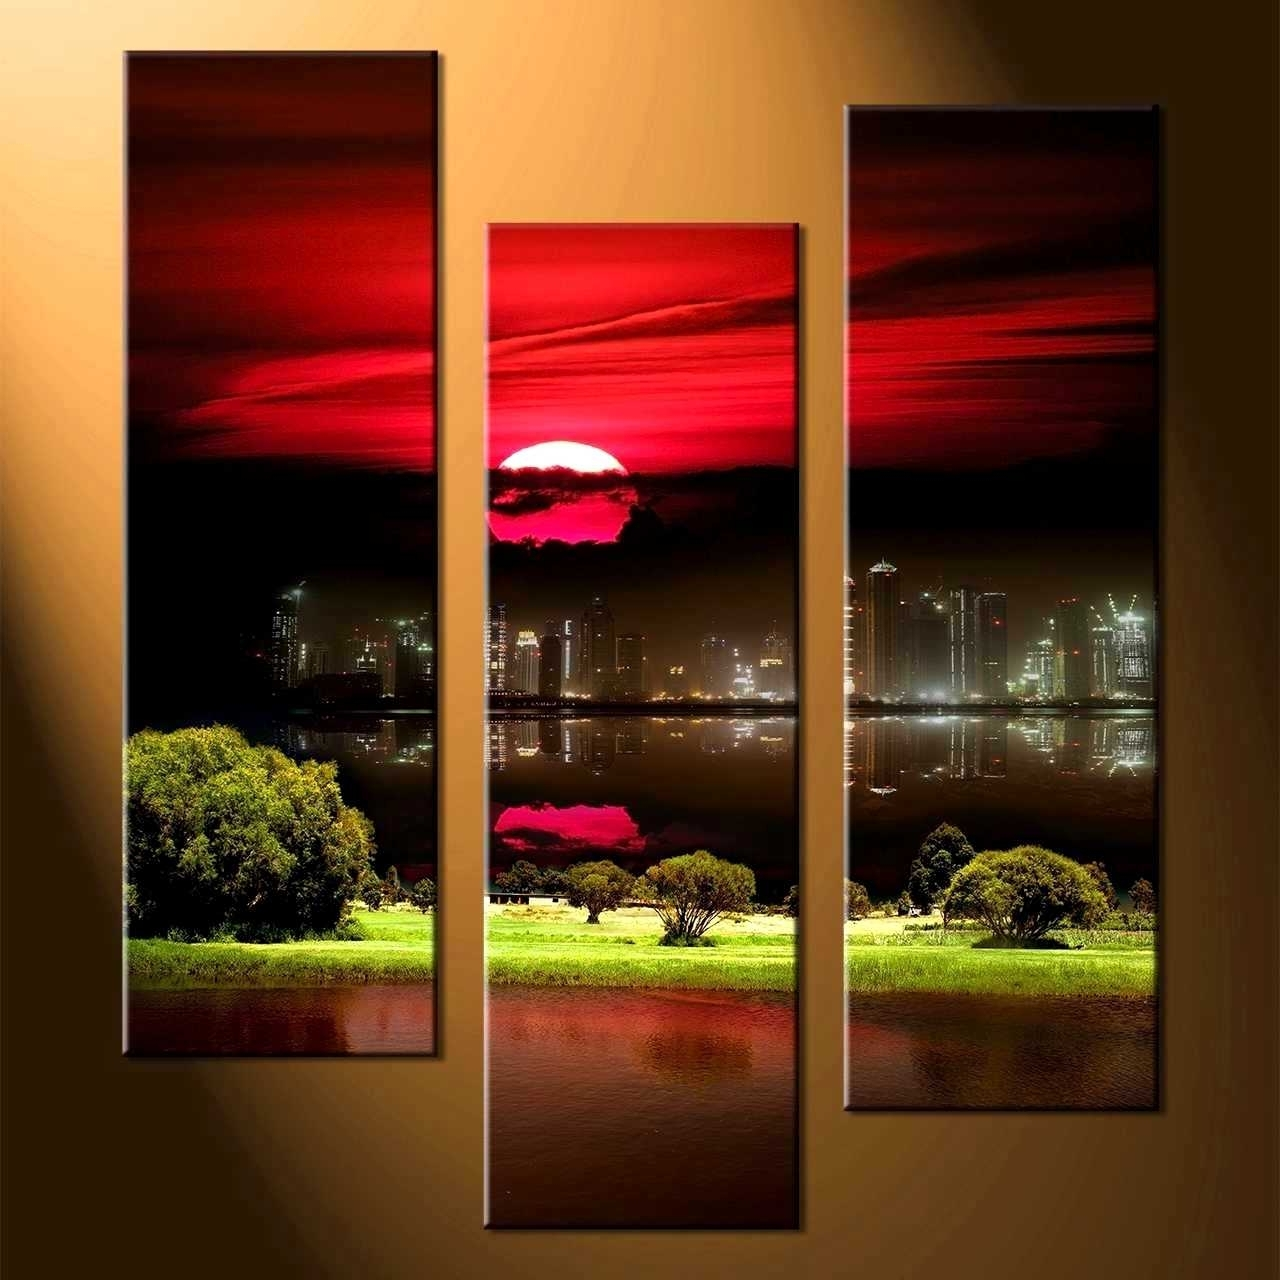 Delectable Remarkable Wall Decor Piece Canvas Art Black Artwork Home Regarding Most Popular Red And Black Canvas Wall Art (View 6 of 15)